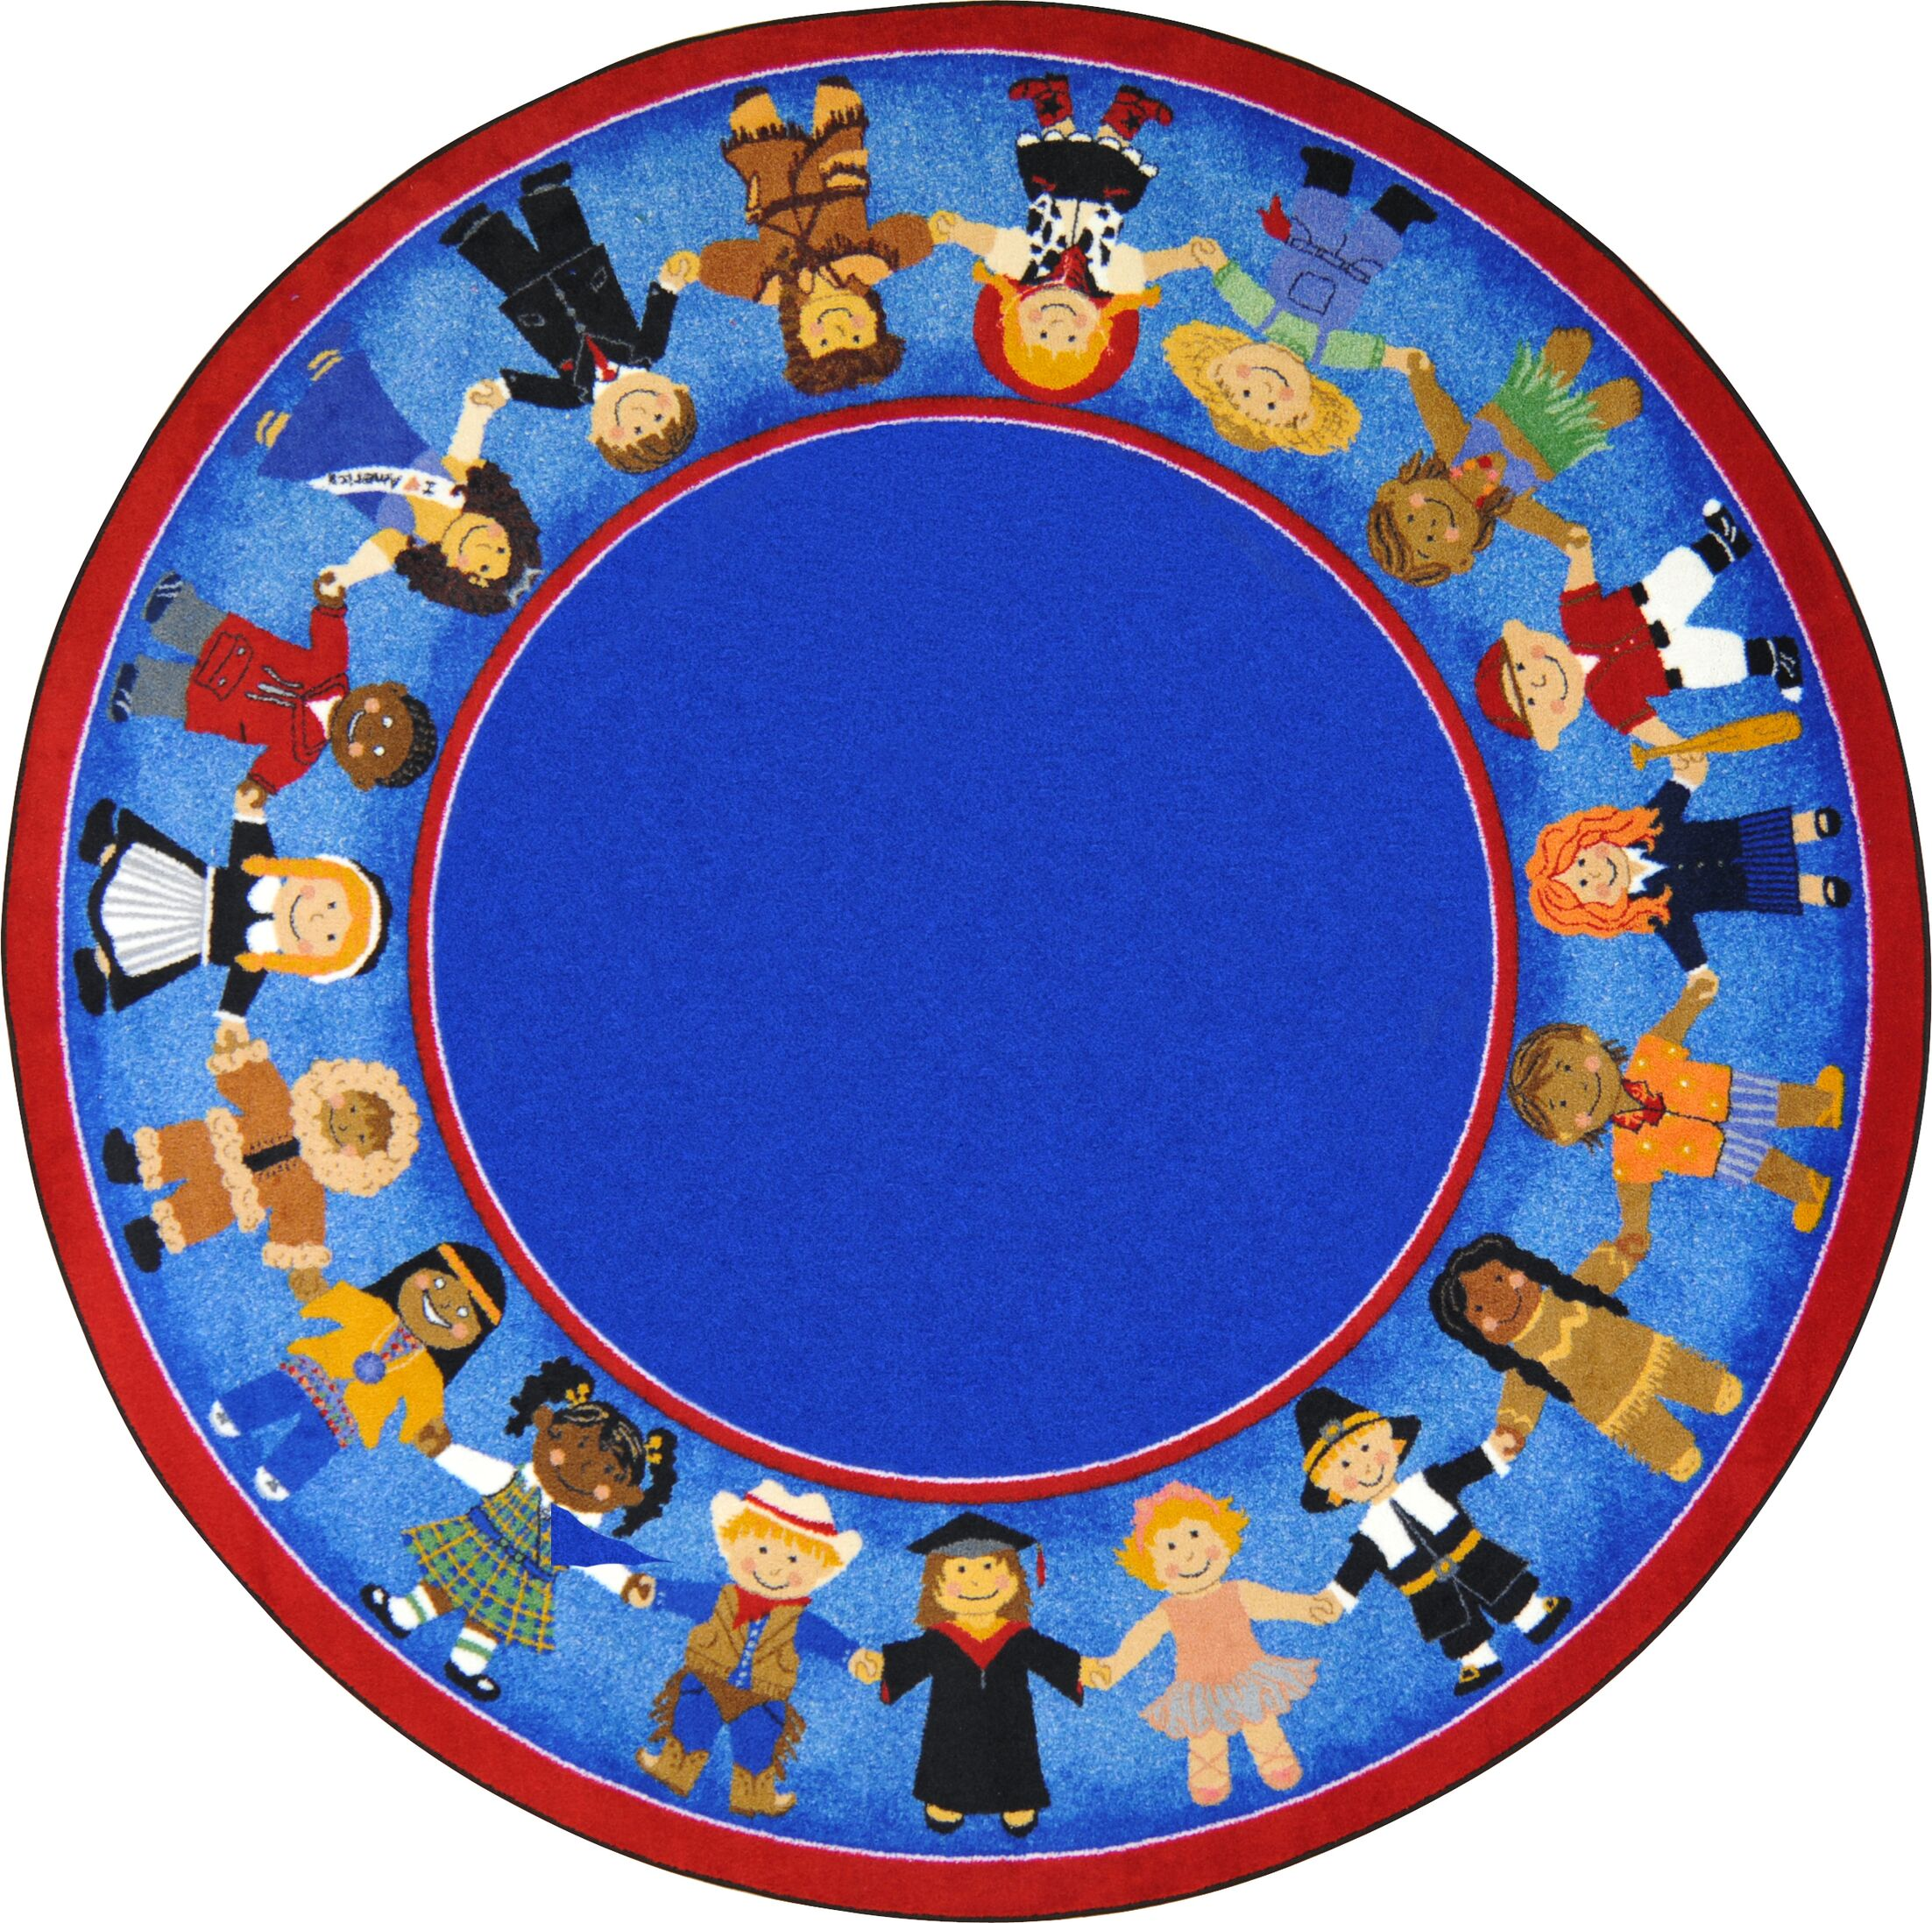 Tufted Blue Area Rug Rug Size: Round 5'4